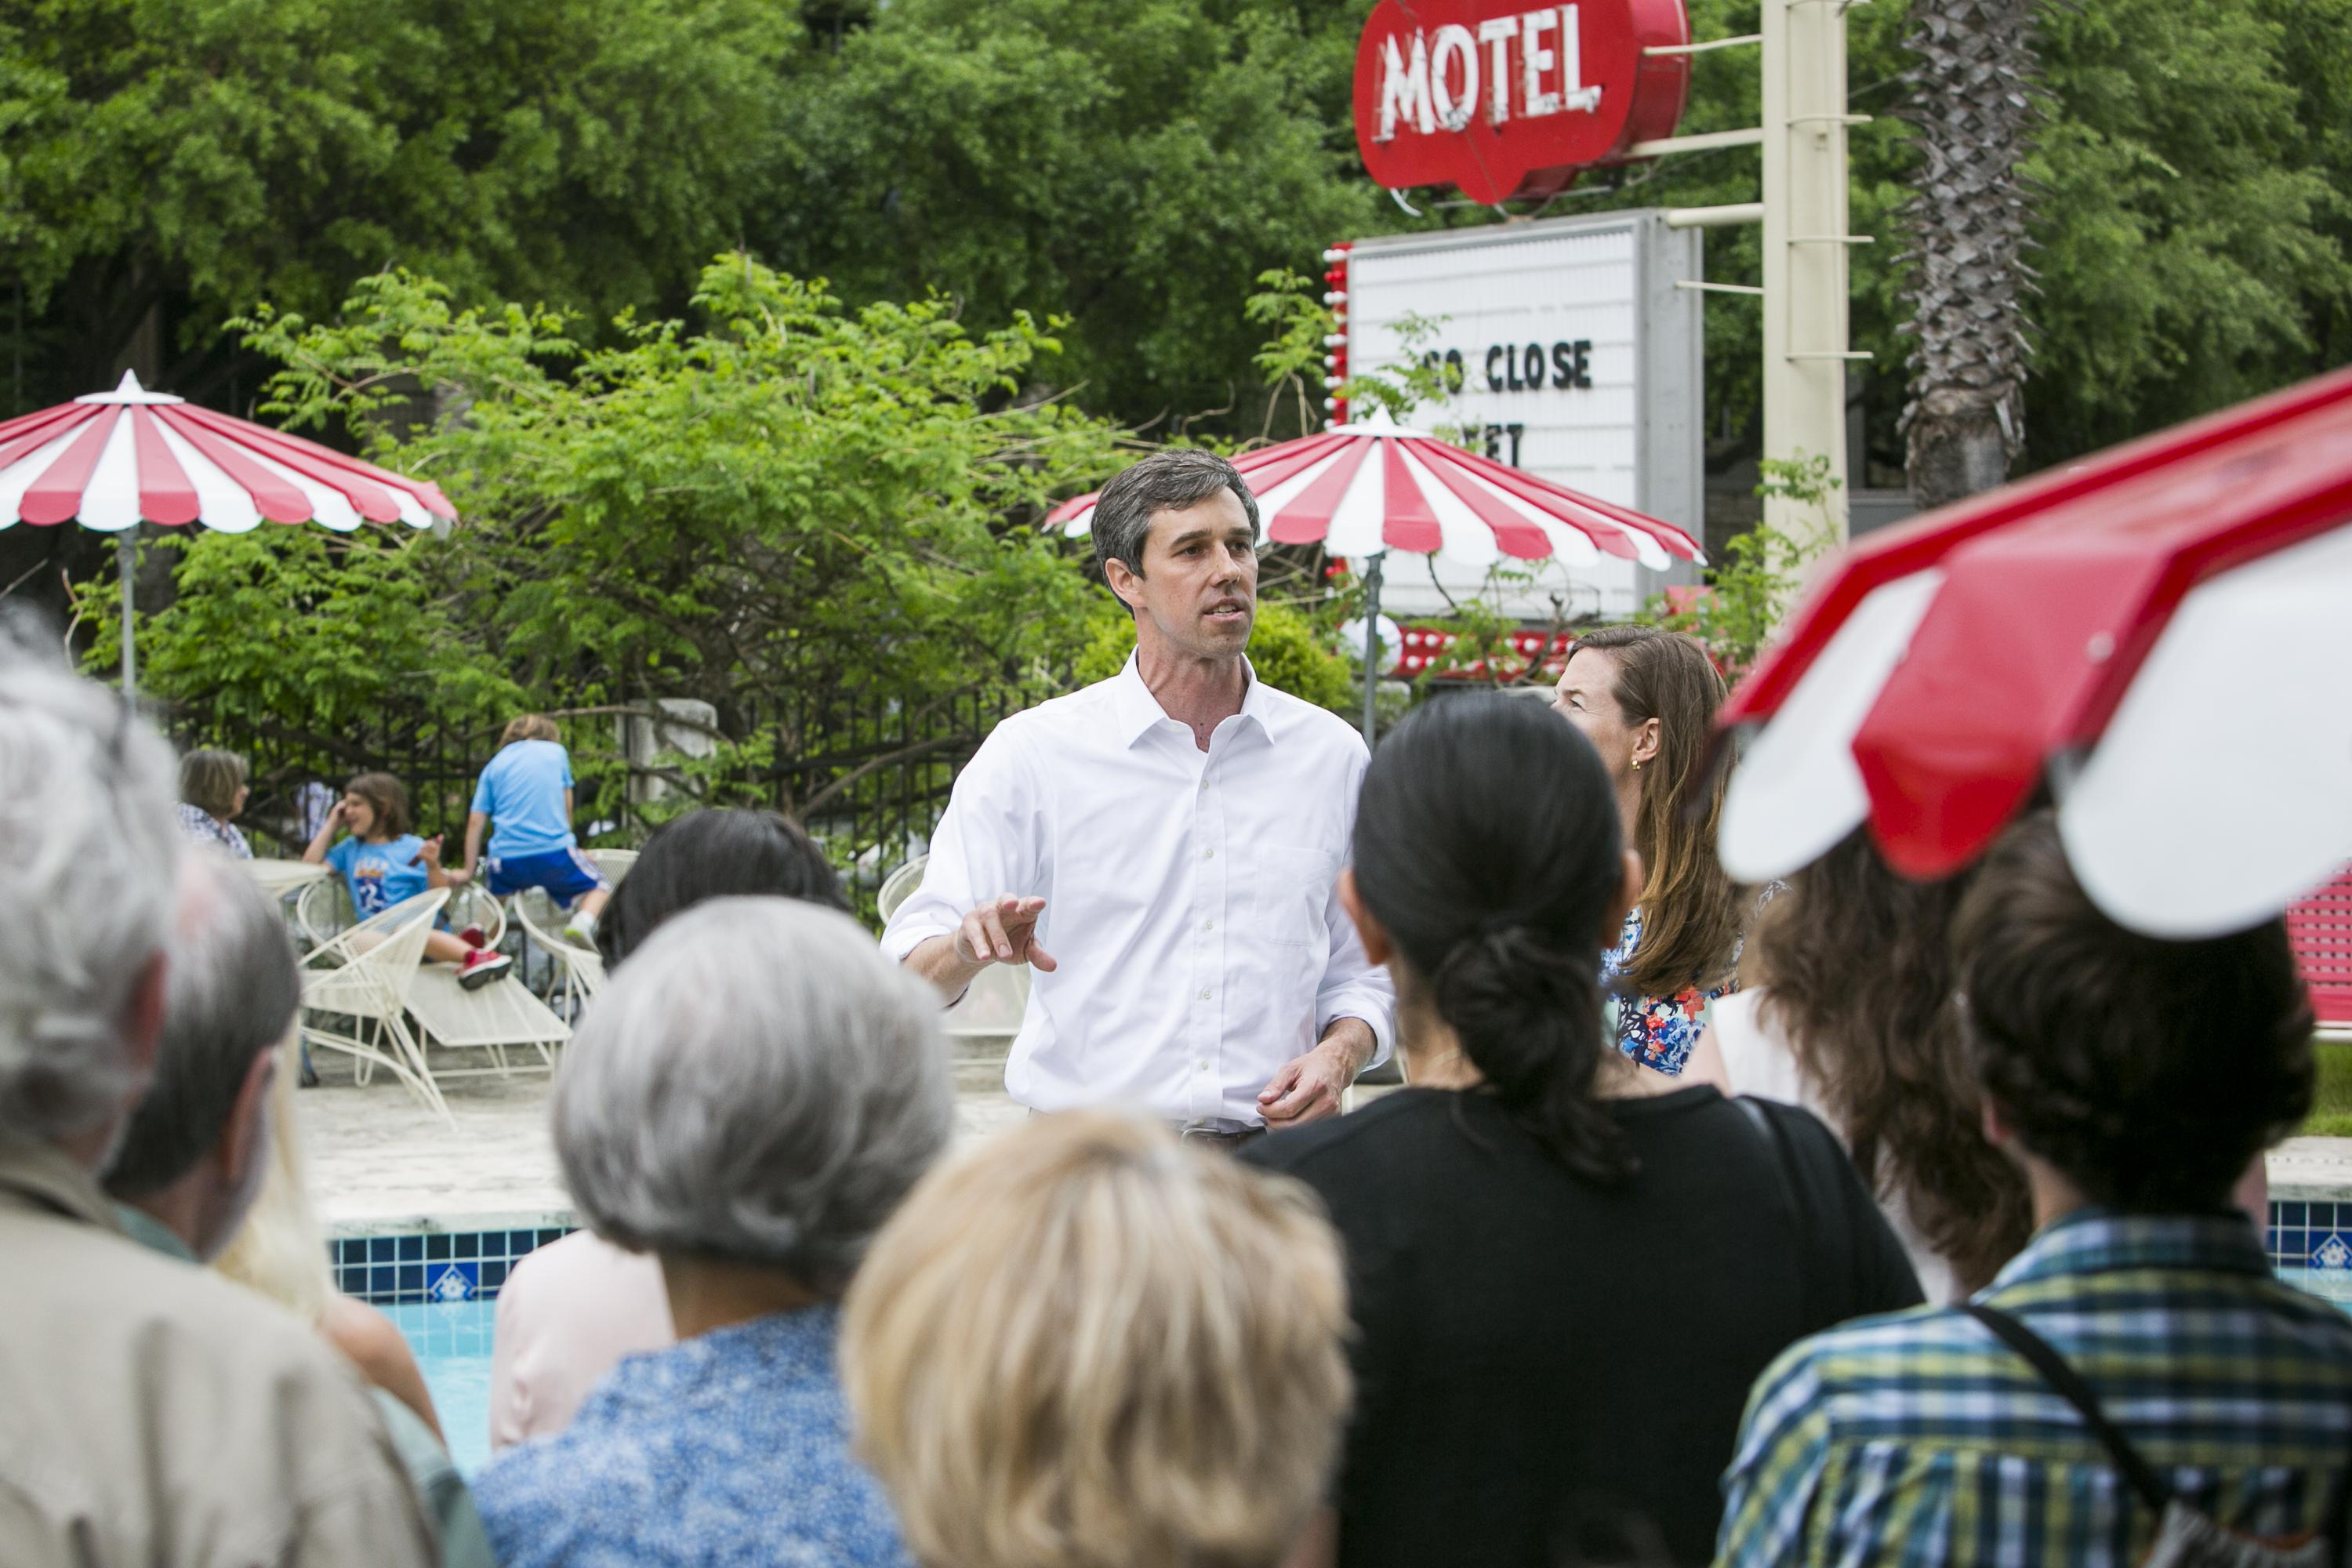 AUSTIN, TX - APRIL 1: Rep. Beto O'Rourke (D-TX) holds a fundraiser at the Austin Motel on April 1, 2017 in Austin, Texas.   O'Rourke announced his plan to run for Ted Cruz's Senate seat on Friday and launched his campaign with a four-city tour of Texas. (Photo by Drew Anthony Smith/Getty Images)